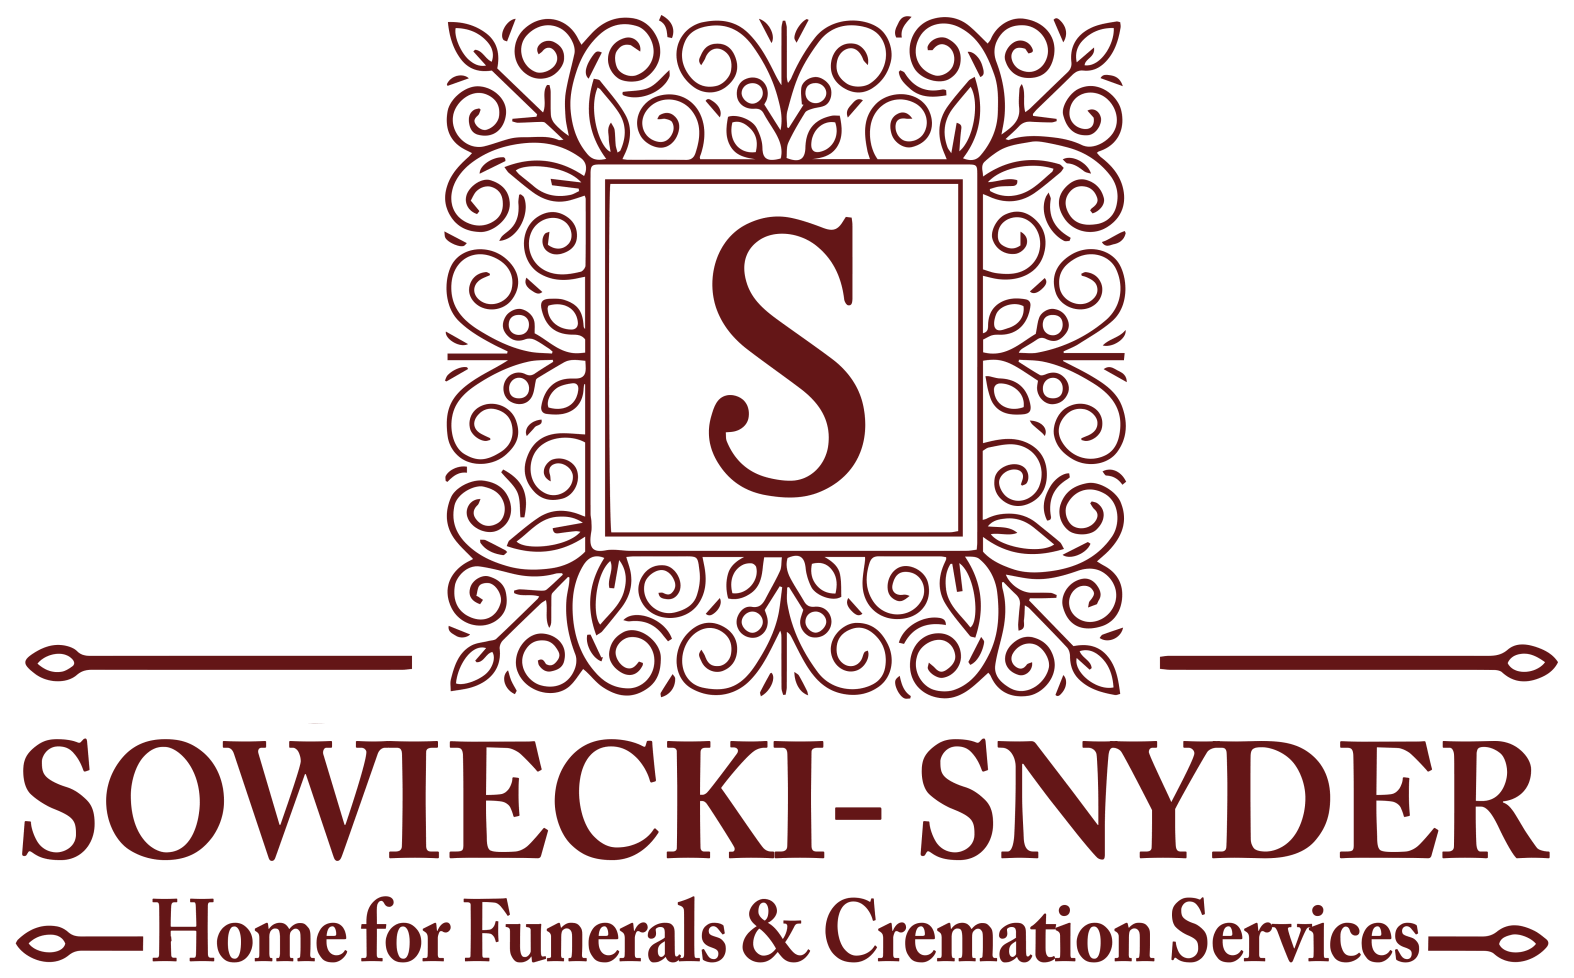 Sowiecki Snyder Home For Funerals Cremation Services